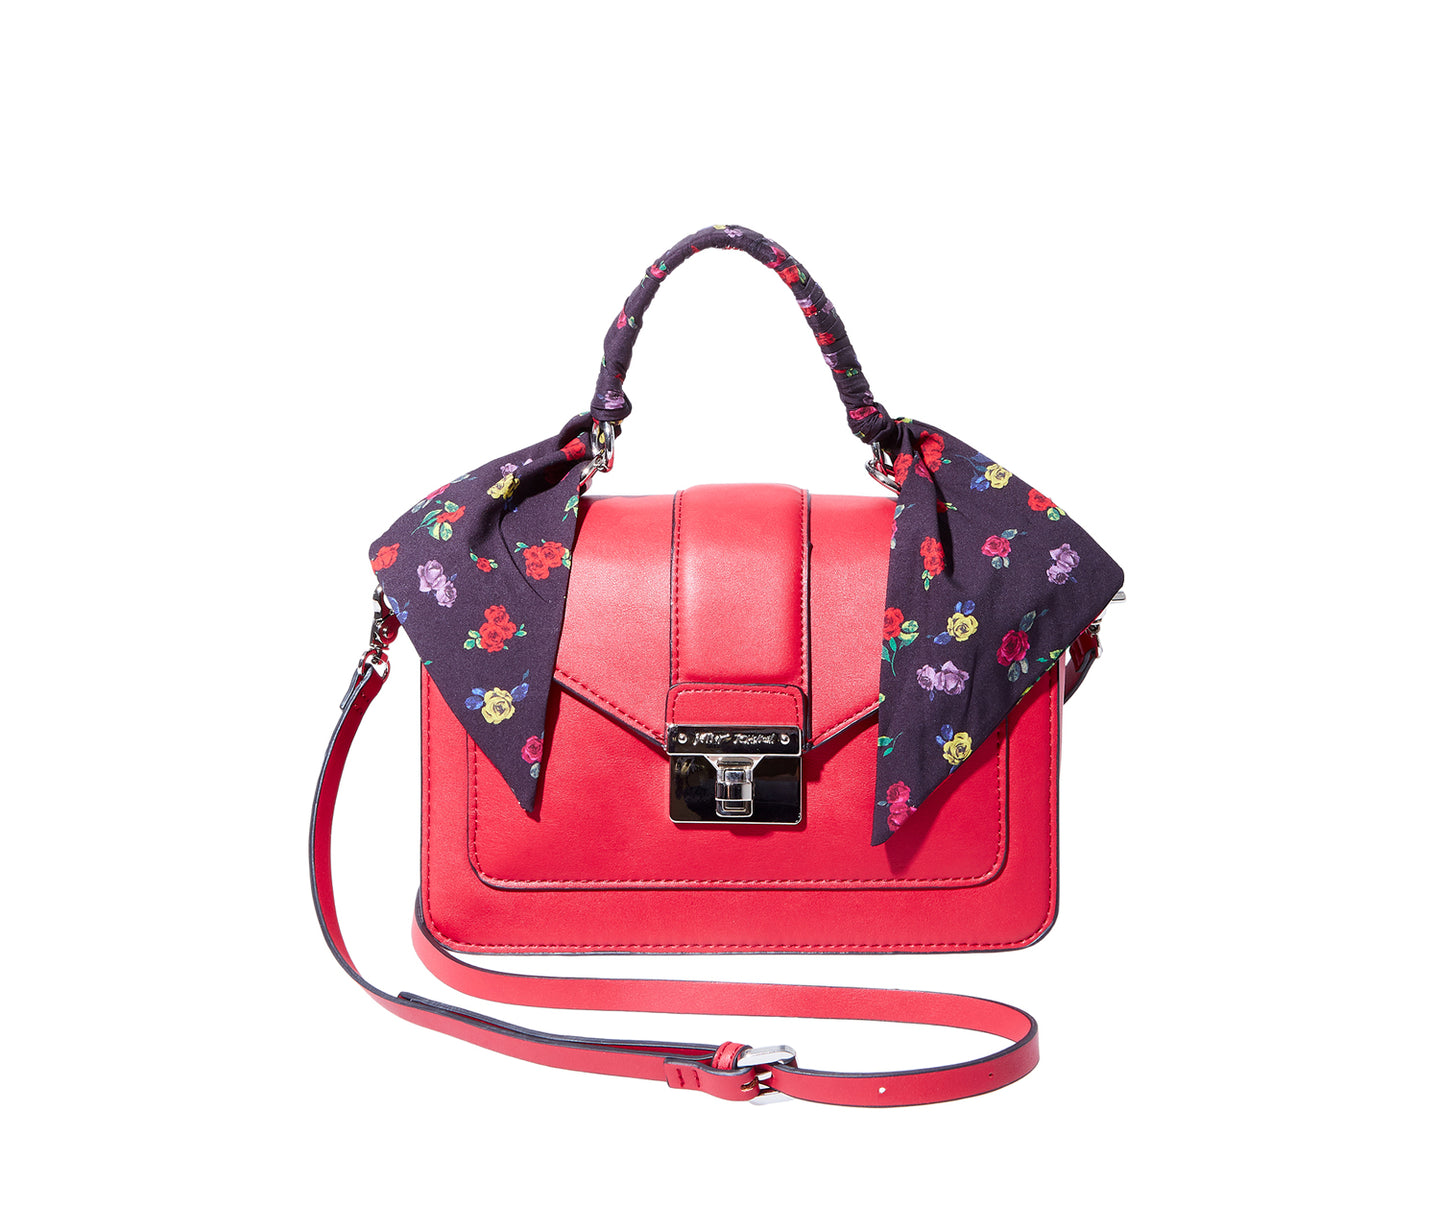 WRAPPED UP IN YOU TOP HANDLE BAG RED - HANDBAGS - Betsey Johnson